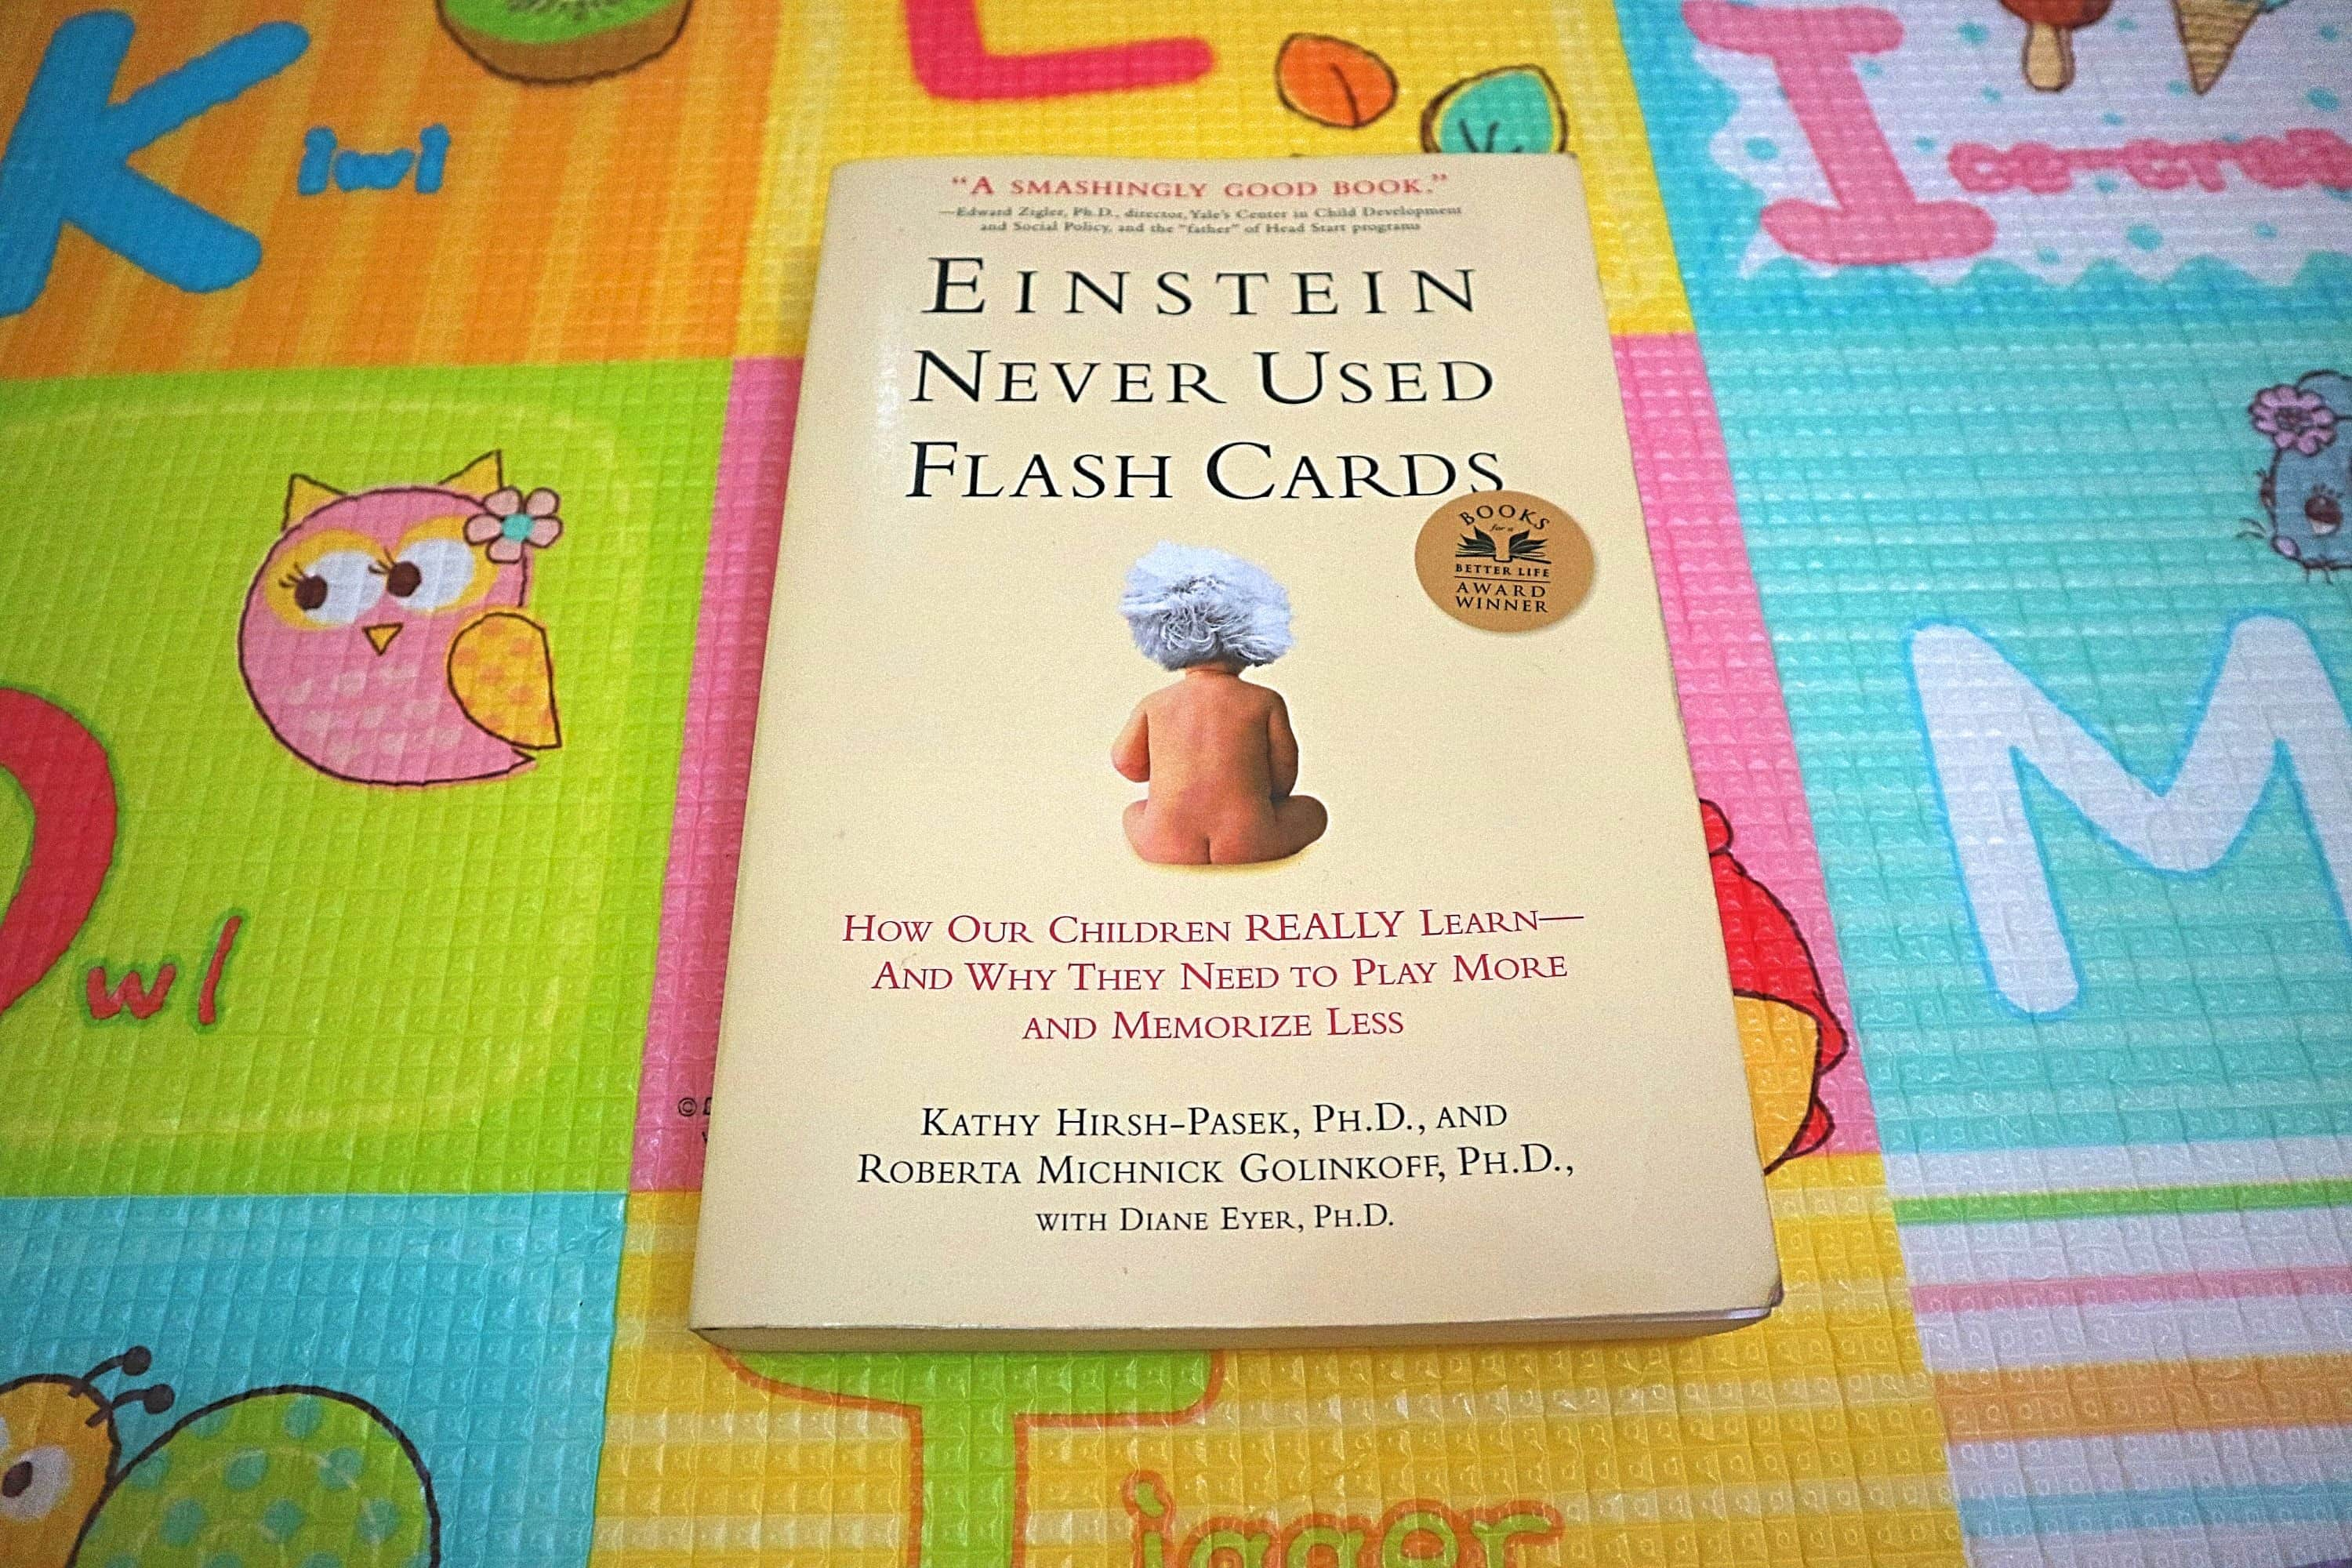 einstein never used flash cards Kathy hirsh-pasek, phd einstein never used flash cards: learning in and out of school with commentary by diana mendley rauner, phd and liza sullivan 4/11/13.